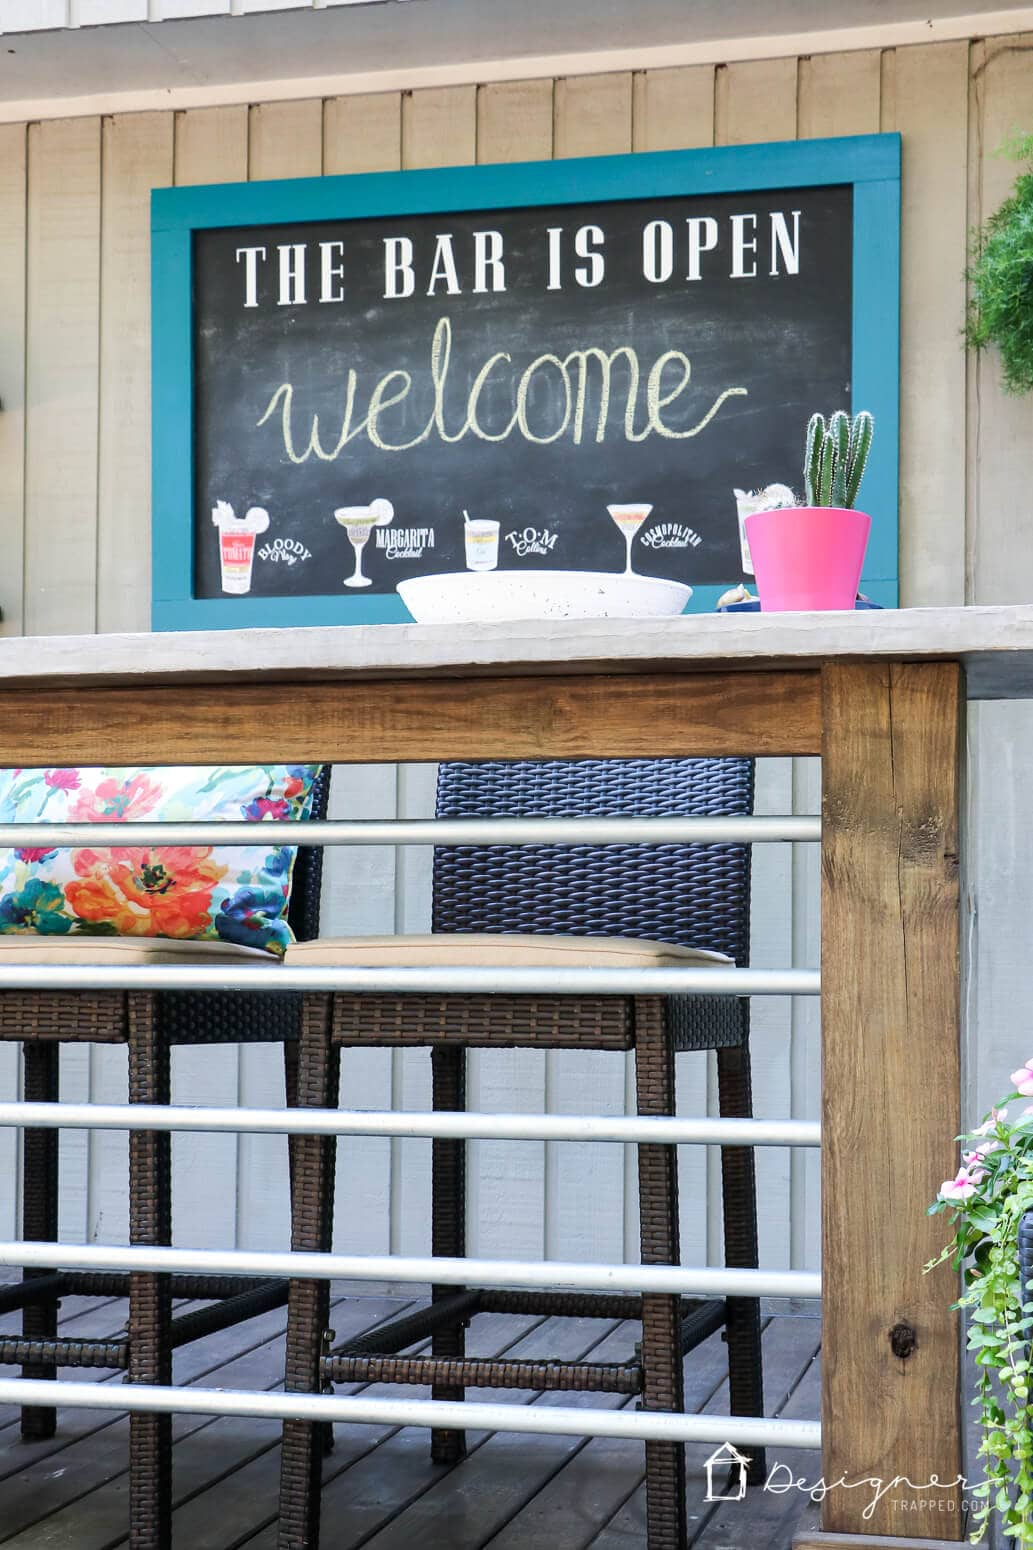 If you have ever wondered how to make a chalkboard to enjoy outside, you are in luck! This tutorial will show you exactly how to make a cute and durable DIY outdoor chalkboard!